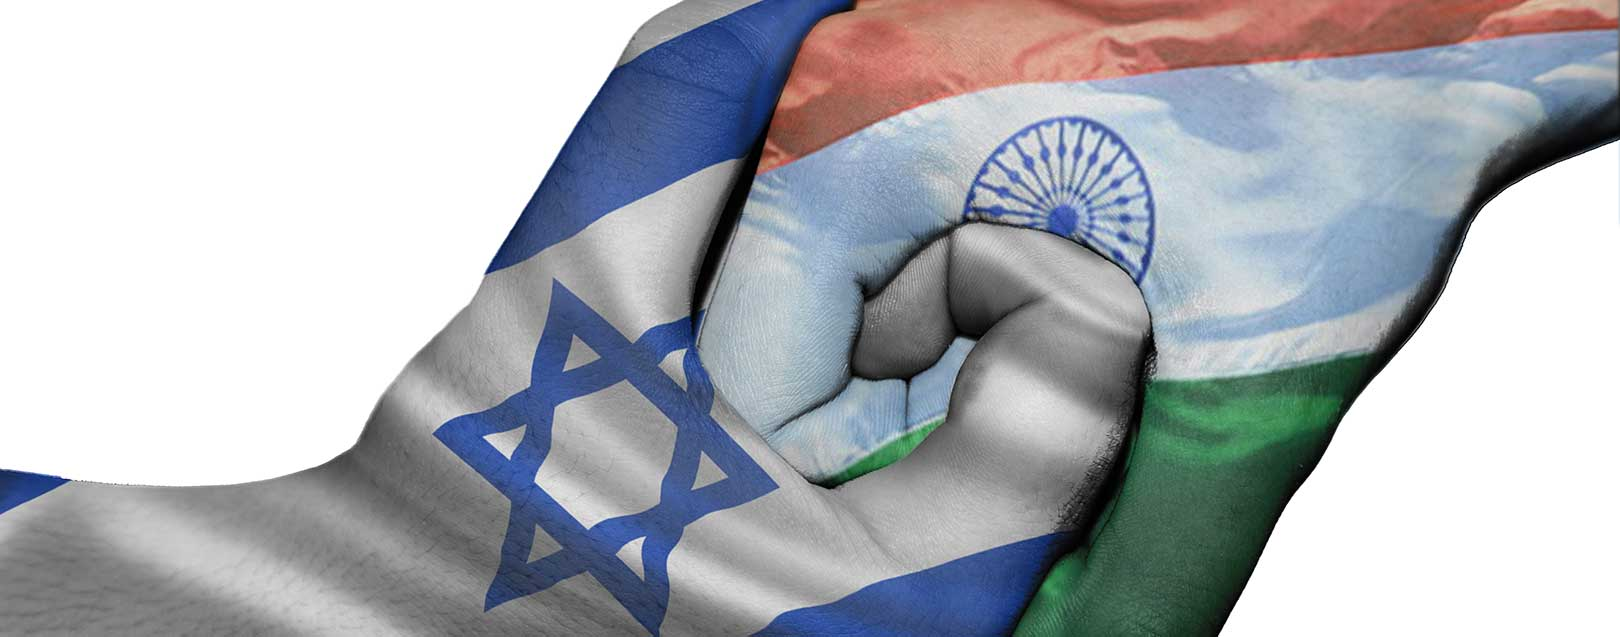 Israel wants more investment friendly policies from Indian government